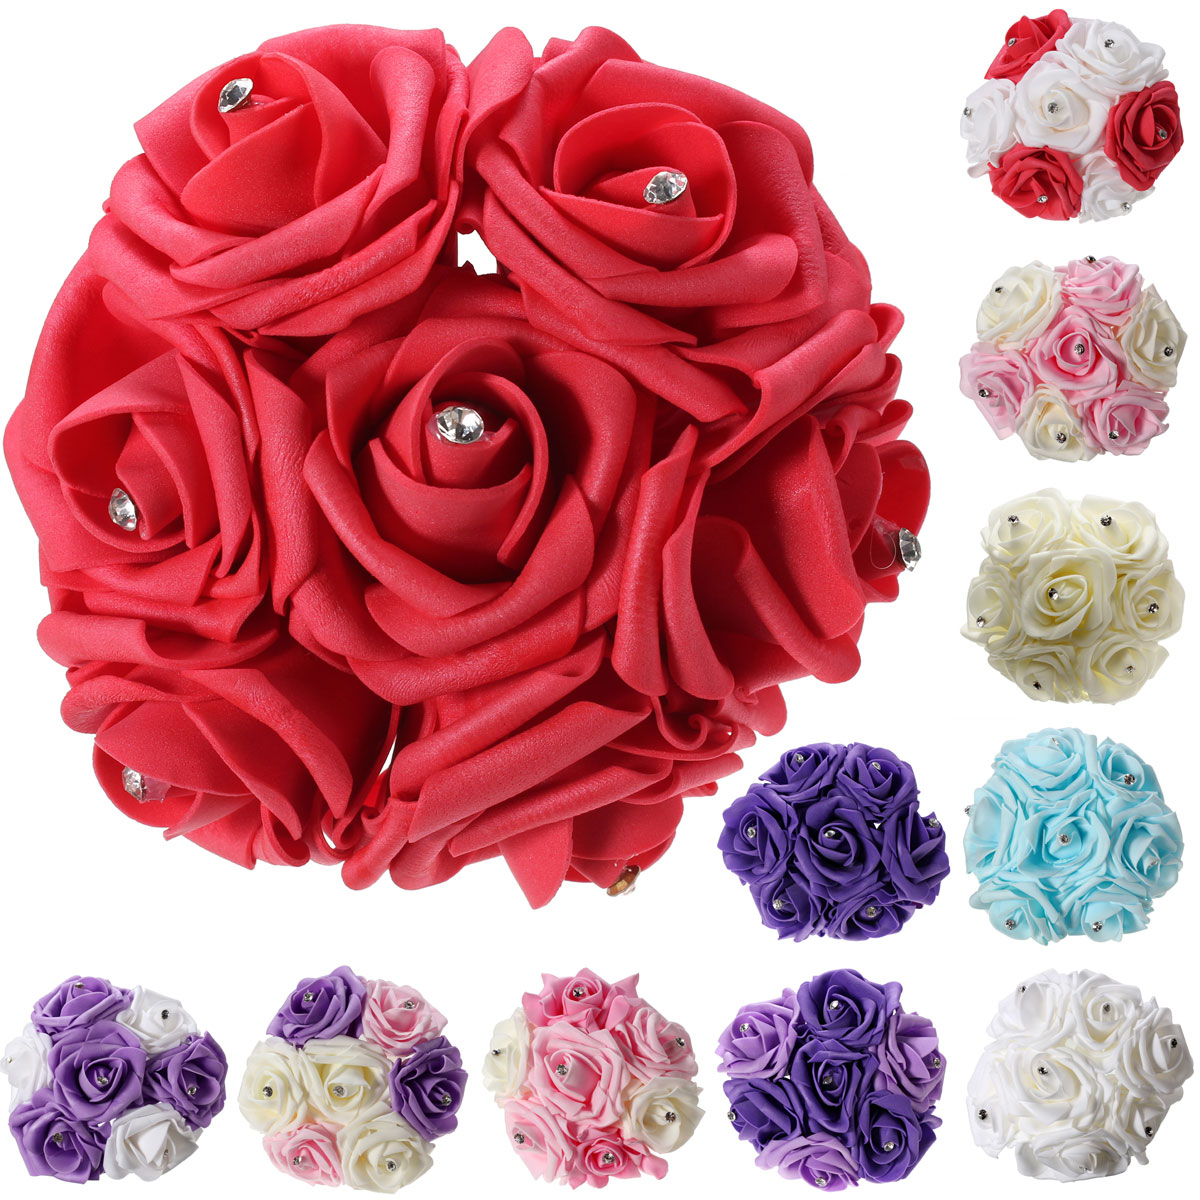 7PCS Artificial Foam Flower Rose Craft Bridal Bride Bouquet Wedding Party Decor